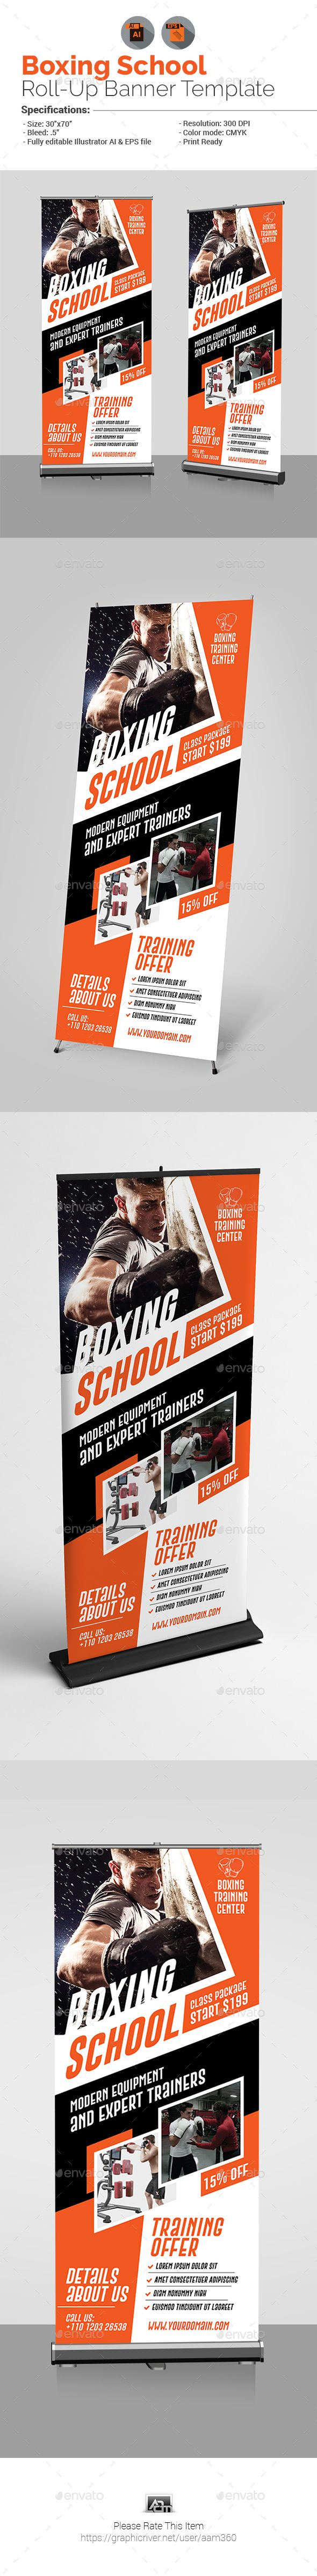 Boxing School Roll-Up Banner Template Vector EPS, AI Illustrator